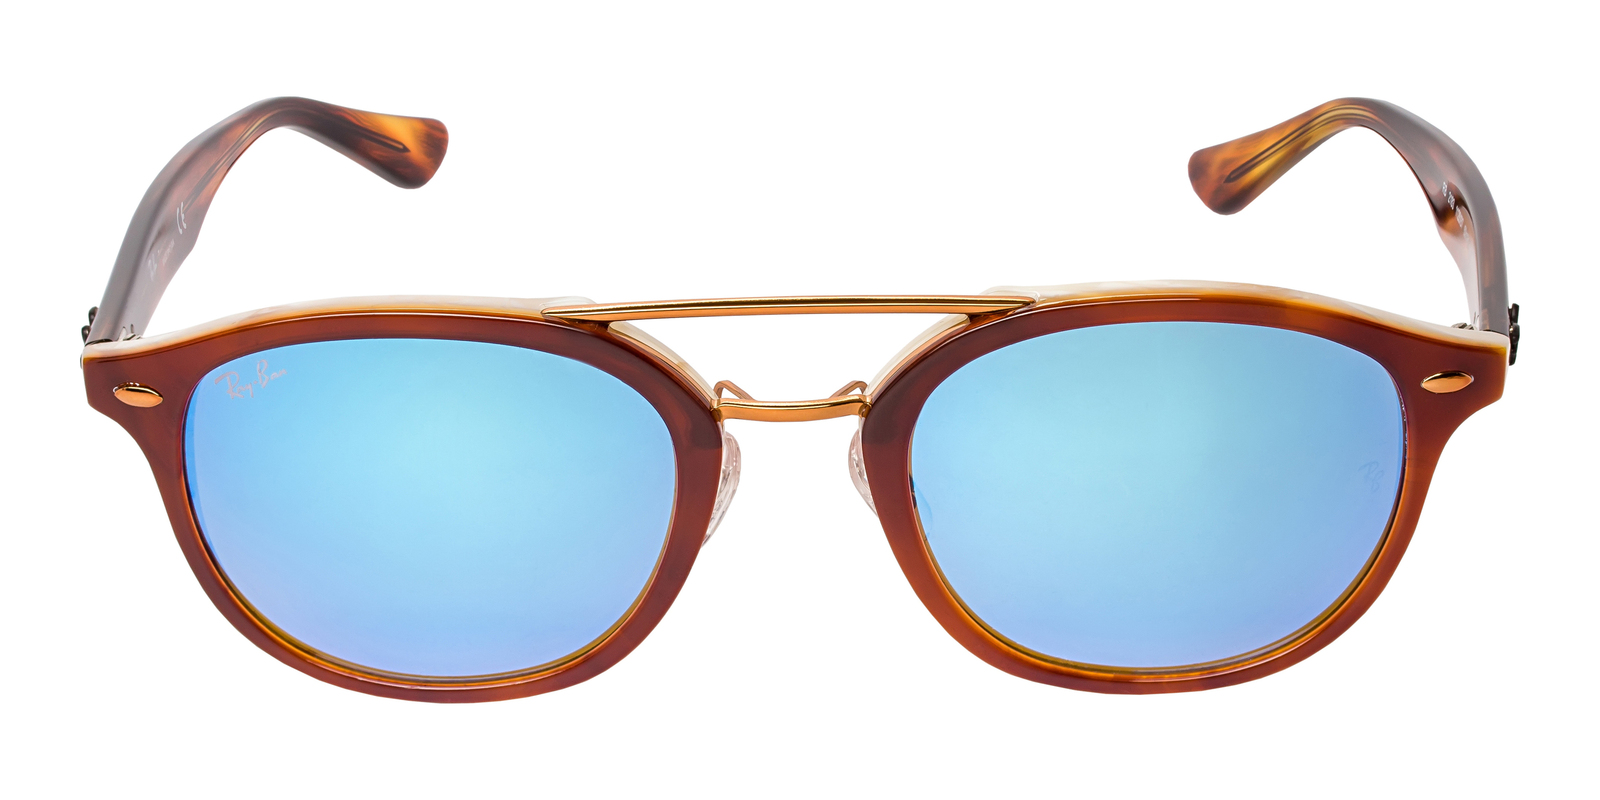 86cd3abbeab6e Ray Ban RB2183 1128B7 53 Women s Tortoise and 50 similar items